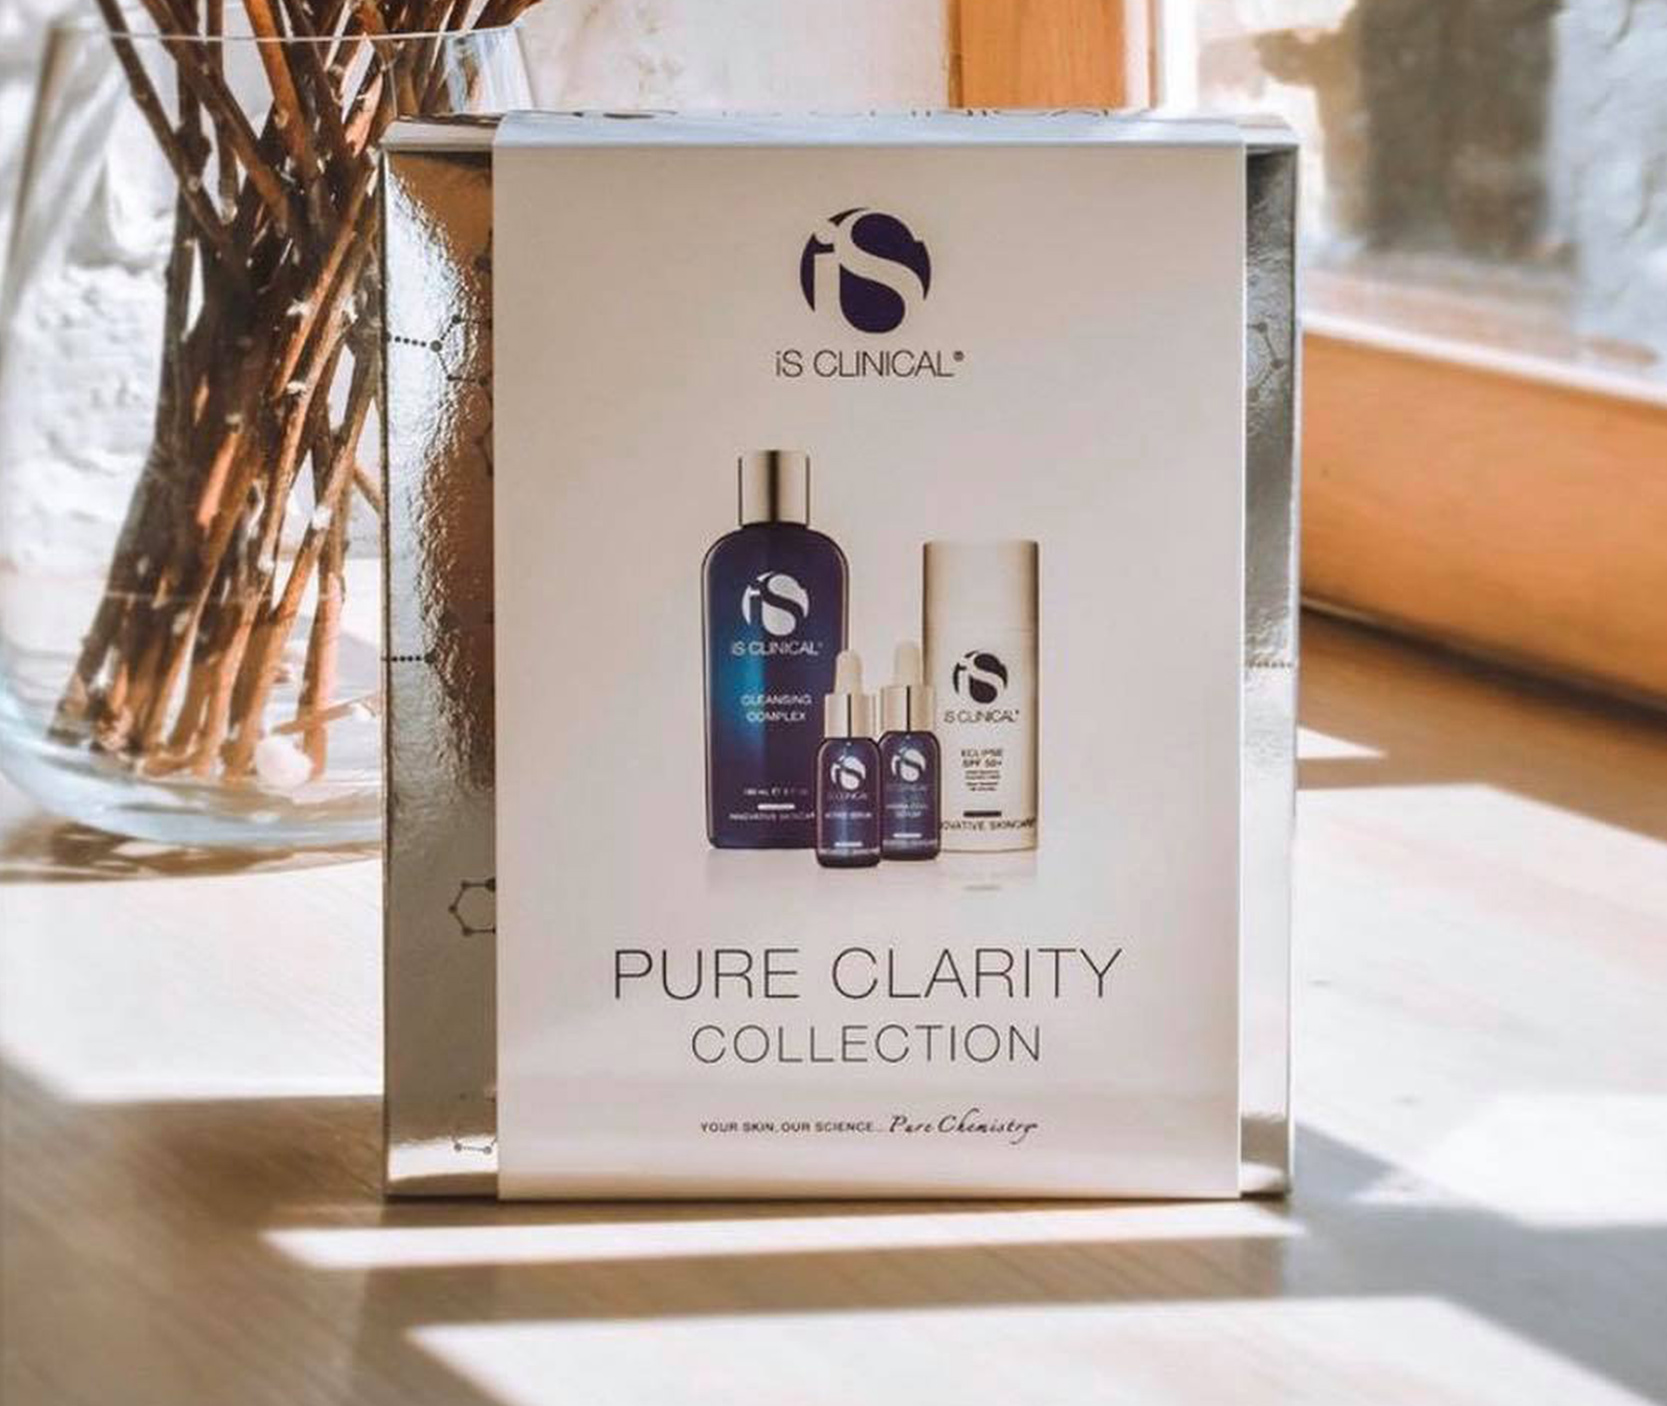 iS Clinical: Pure Clarity Collection